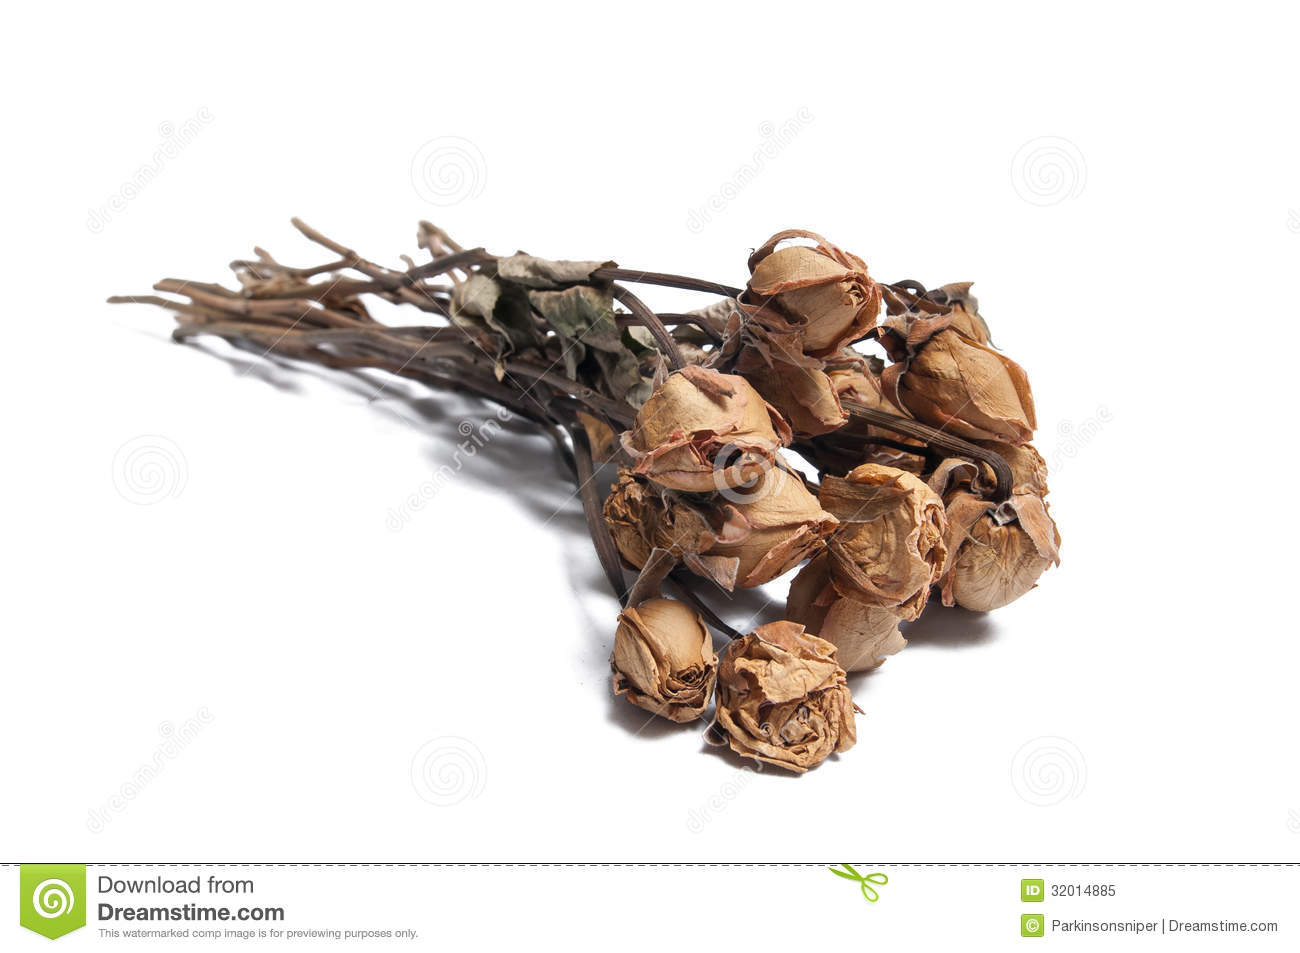 Drawing Floor Plans Free Dead Roses Stock Image Image Of Break Petals Leaves